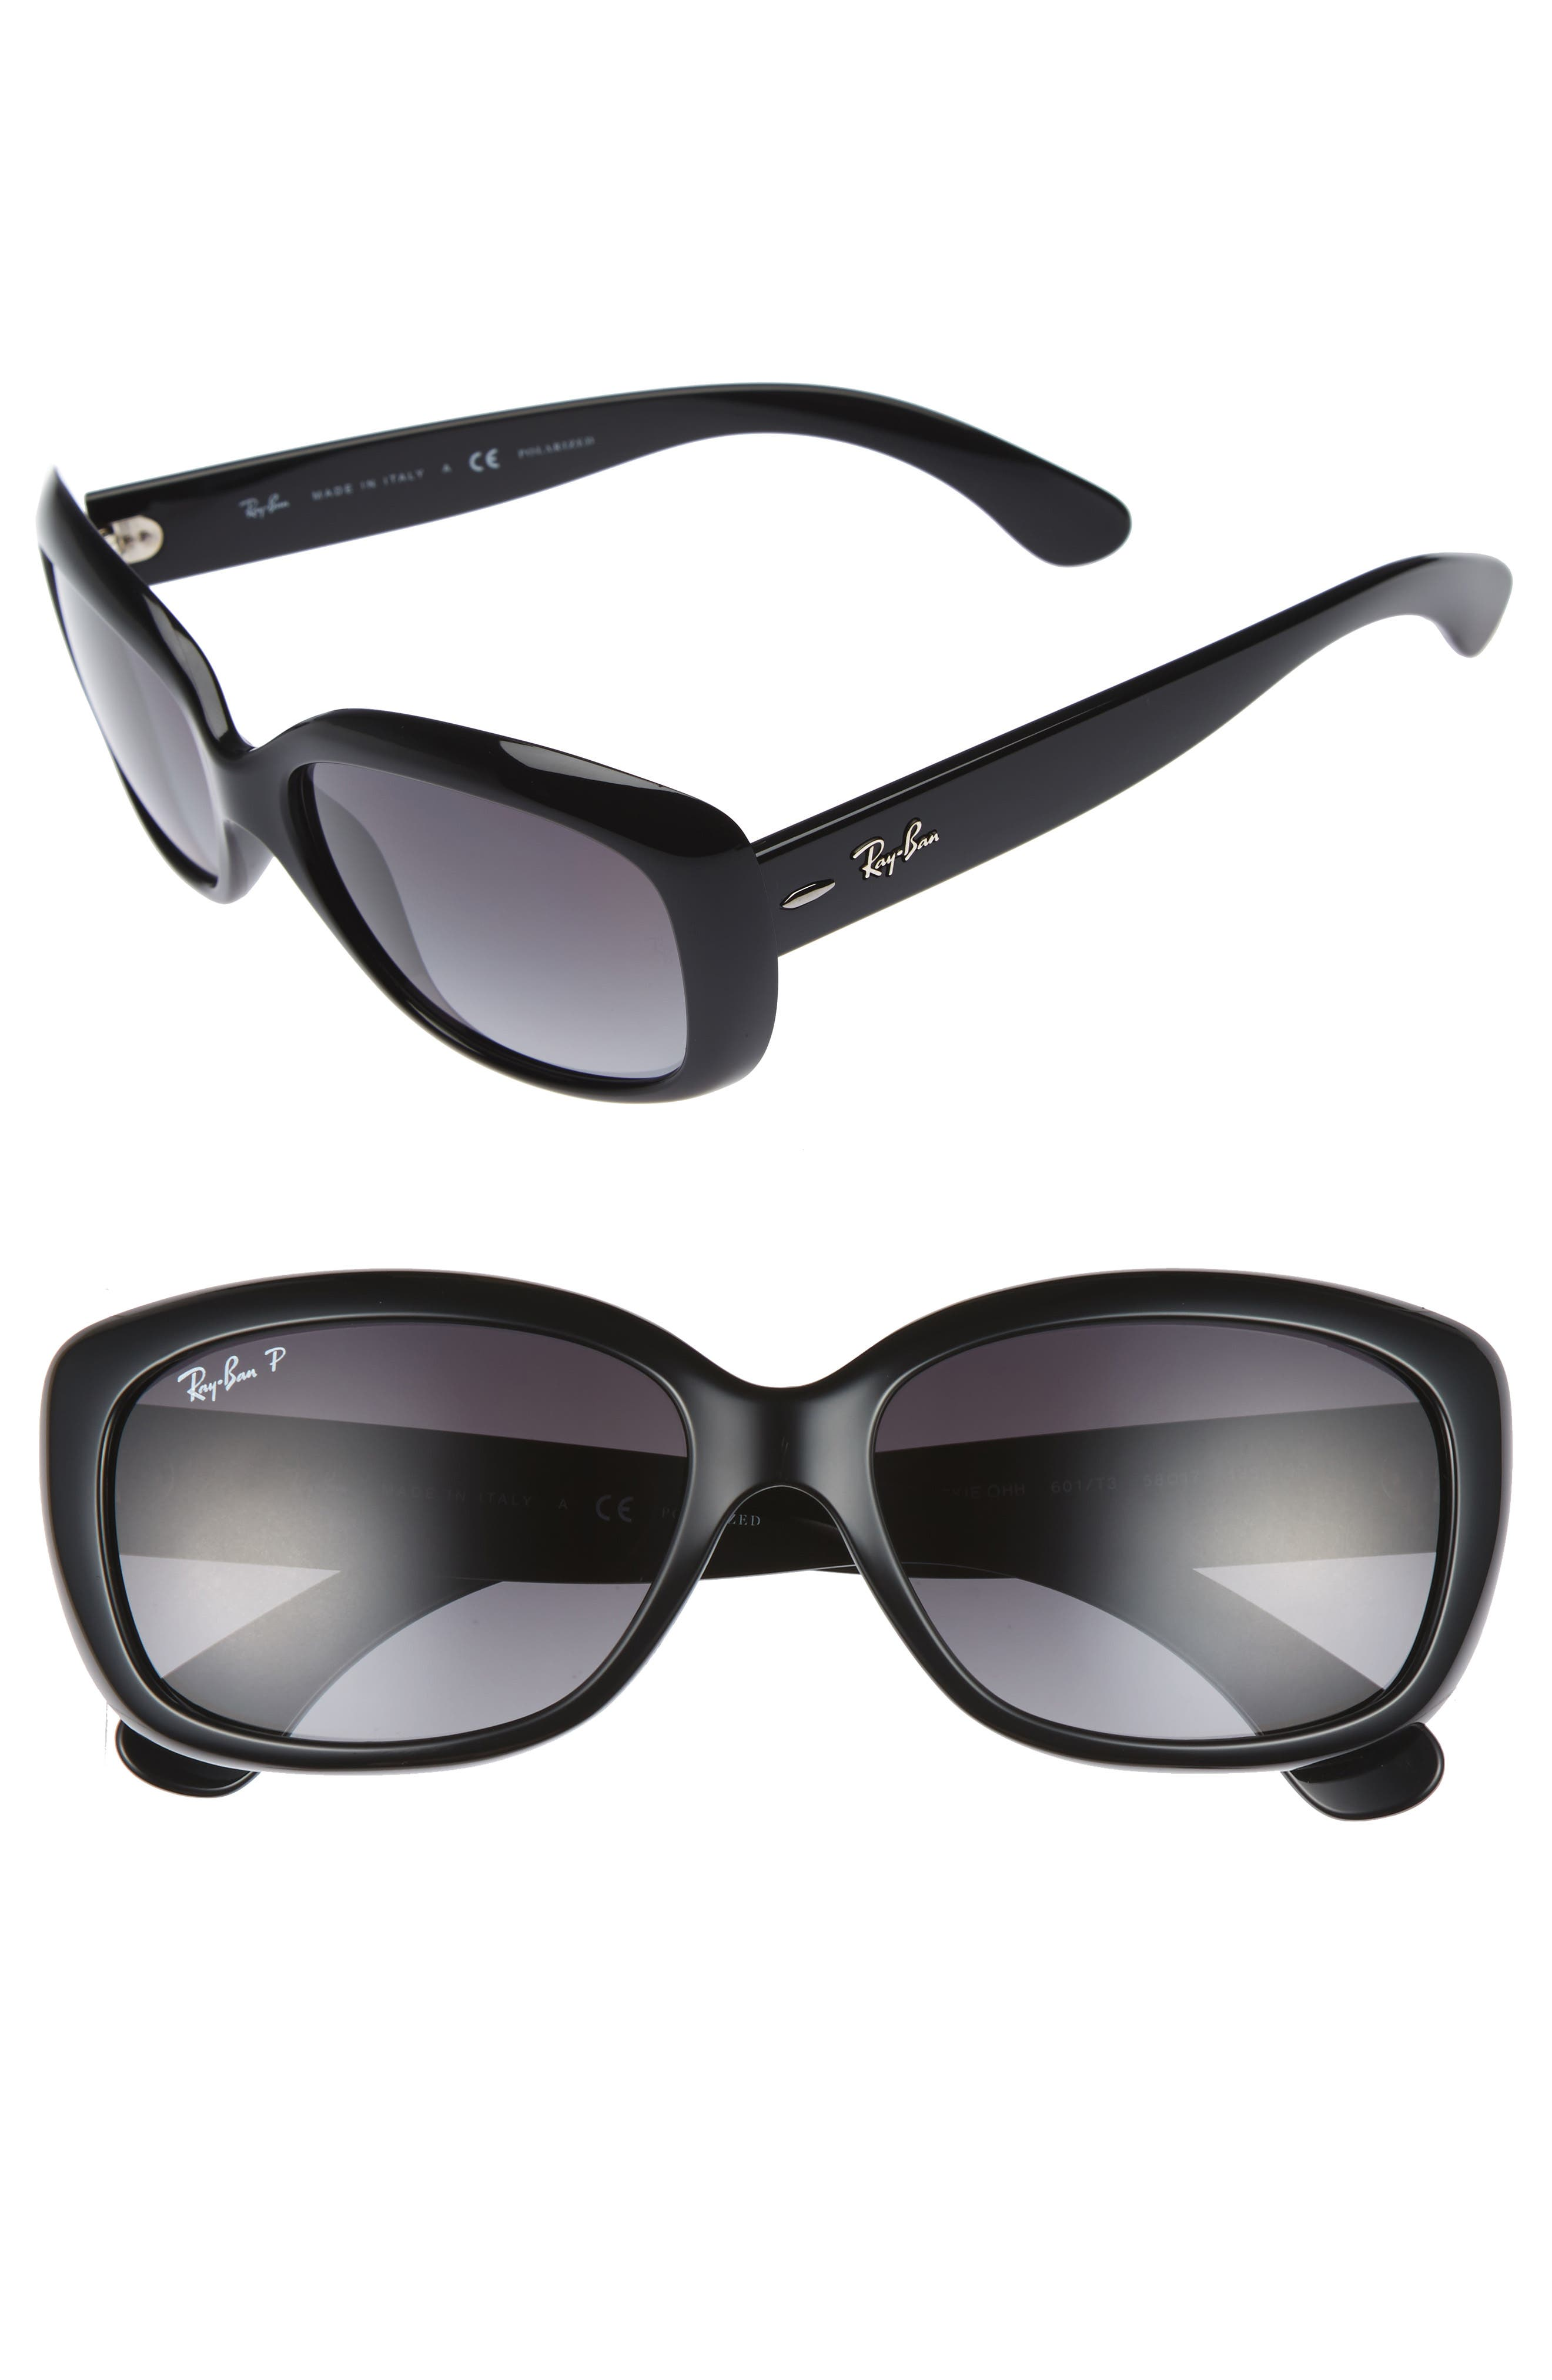 58mm Polarized Sunglasses,                             Main thumbnail 1, color,                             BLACK GREY